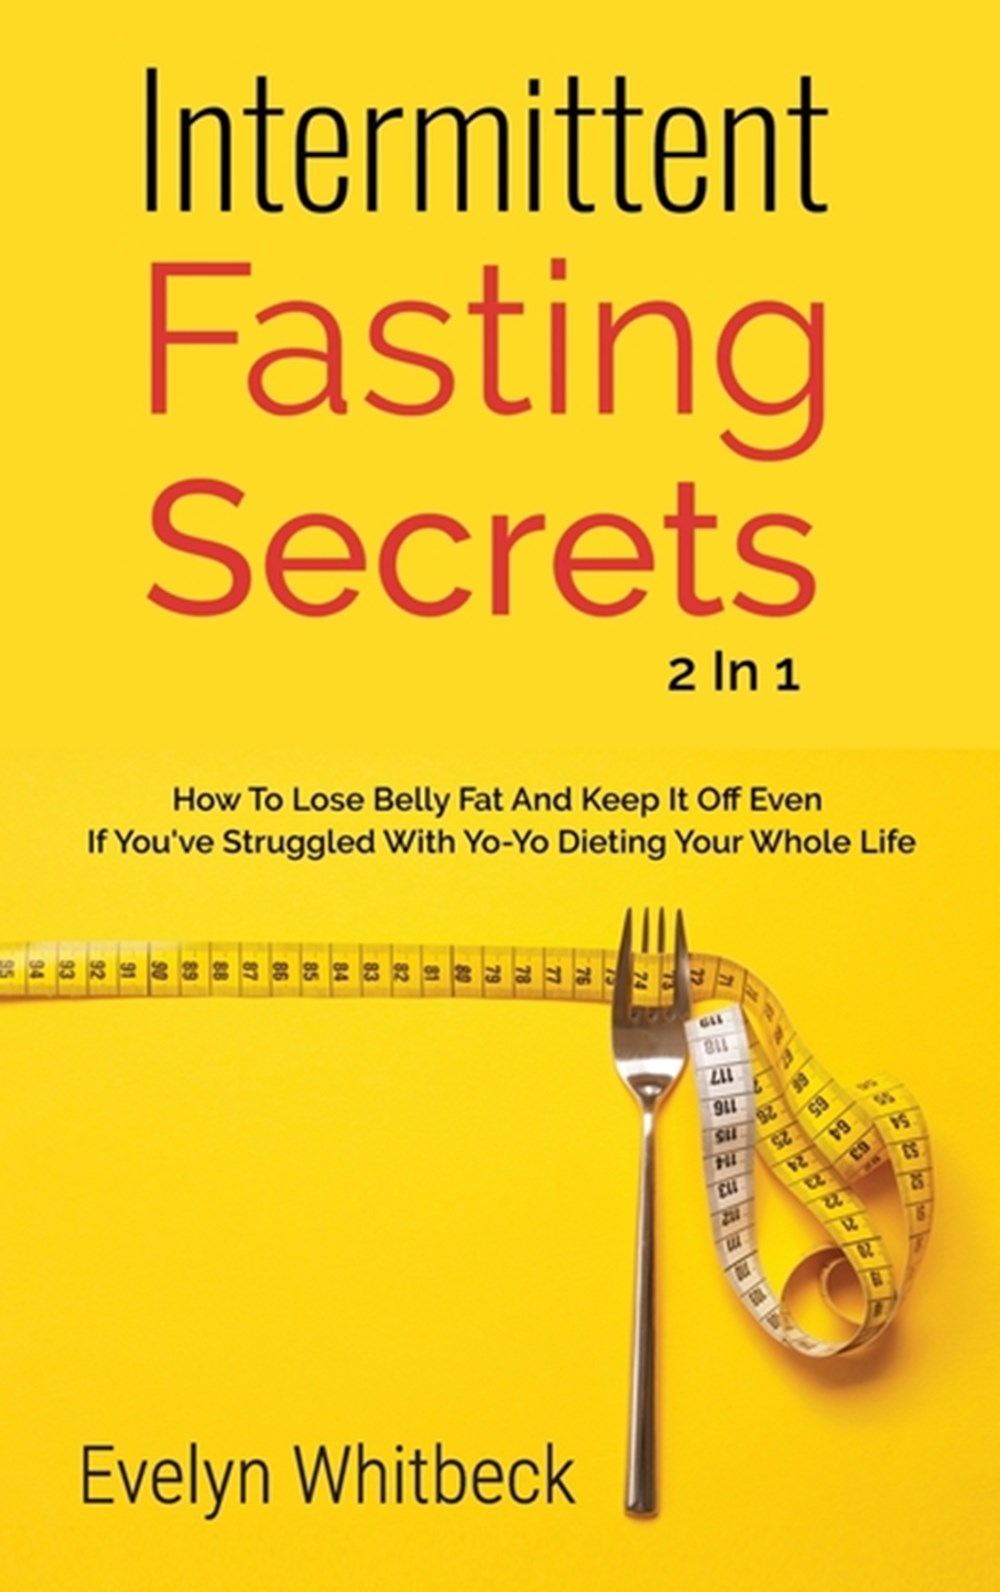 Intermittent Fasting Secrets 2 In 1 How To Lose Belly Fat And Keep It Off If You've Struggled With Y